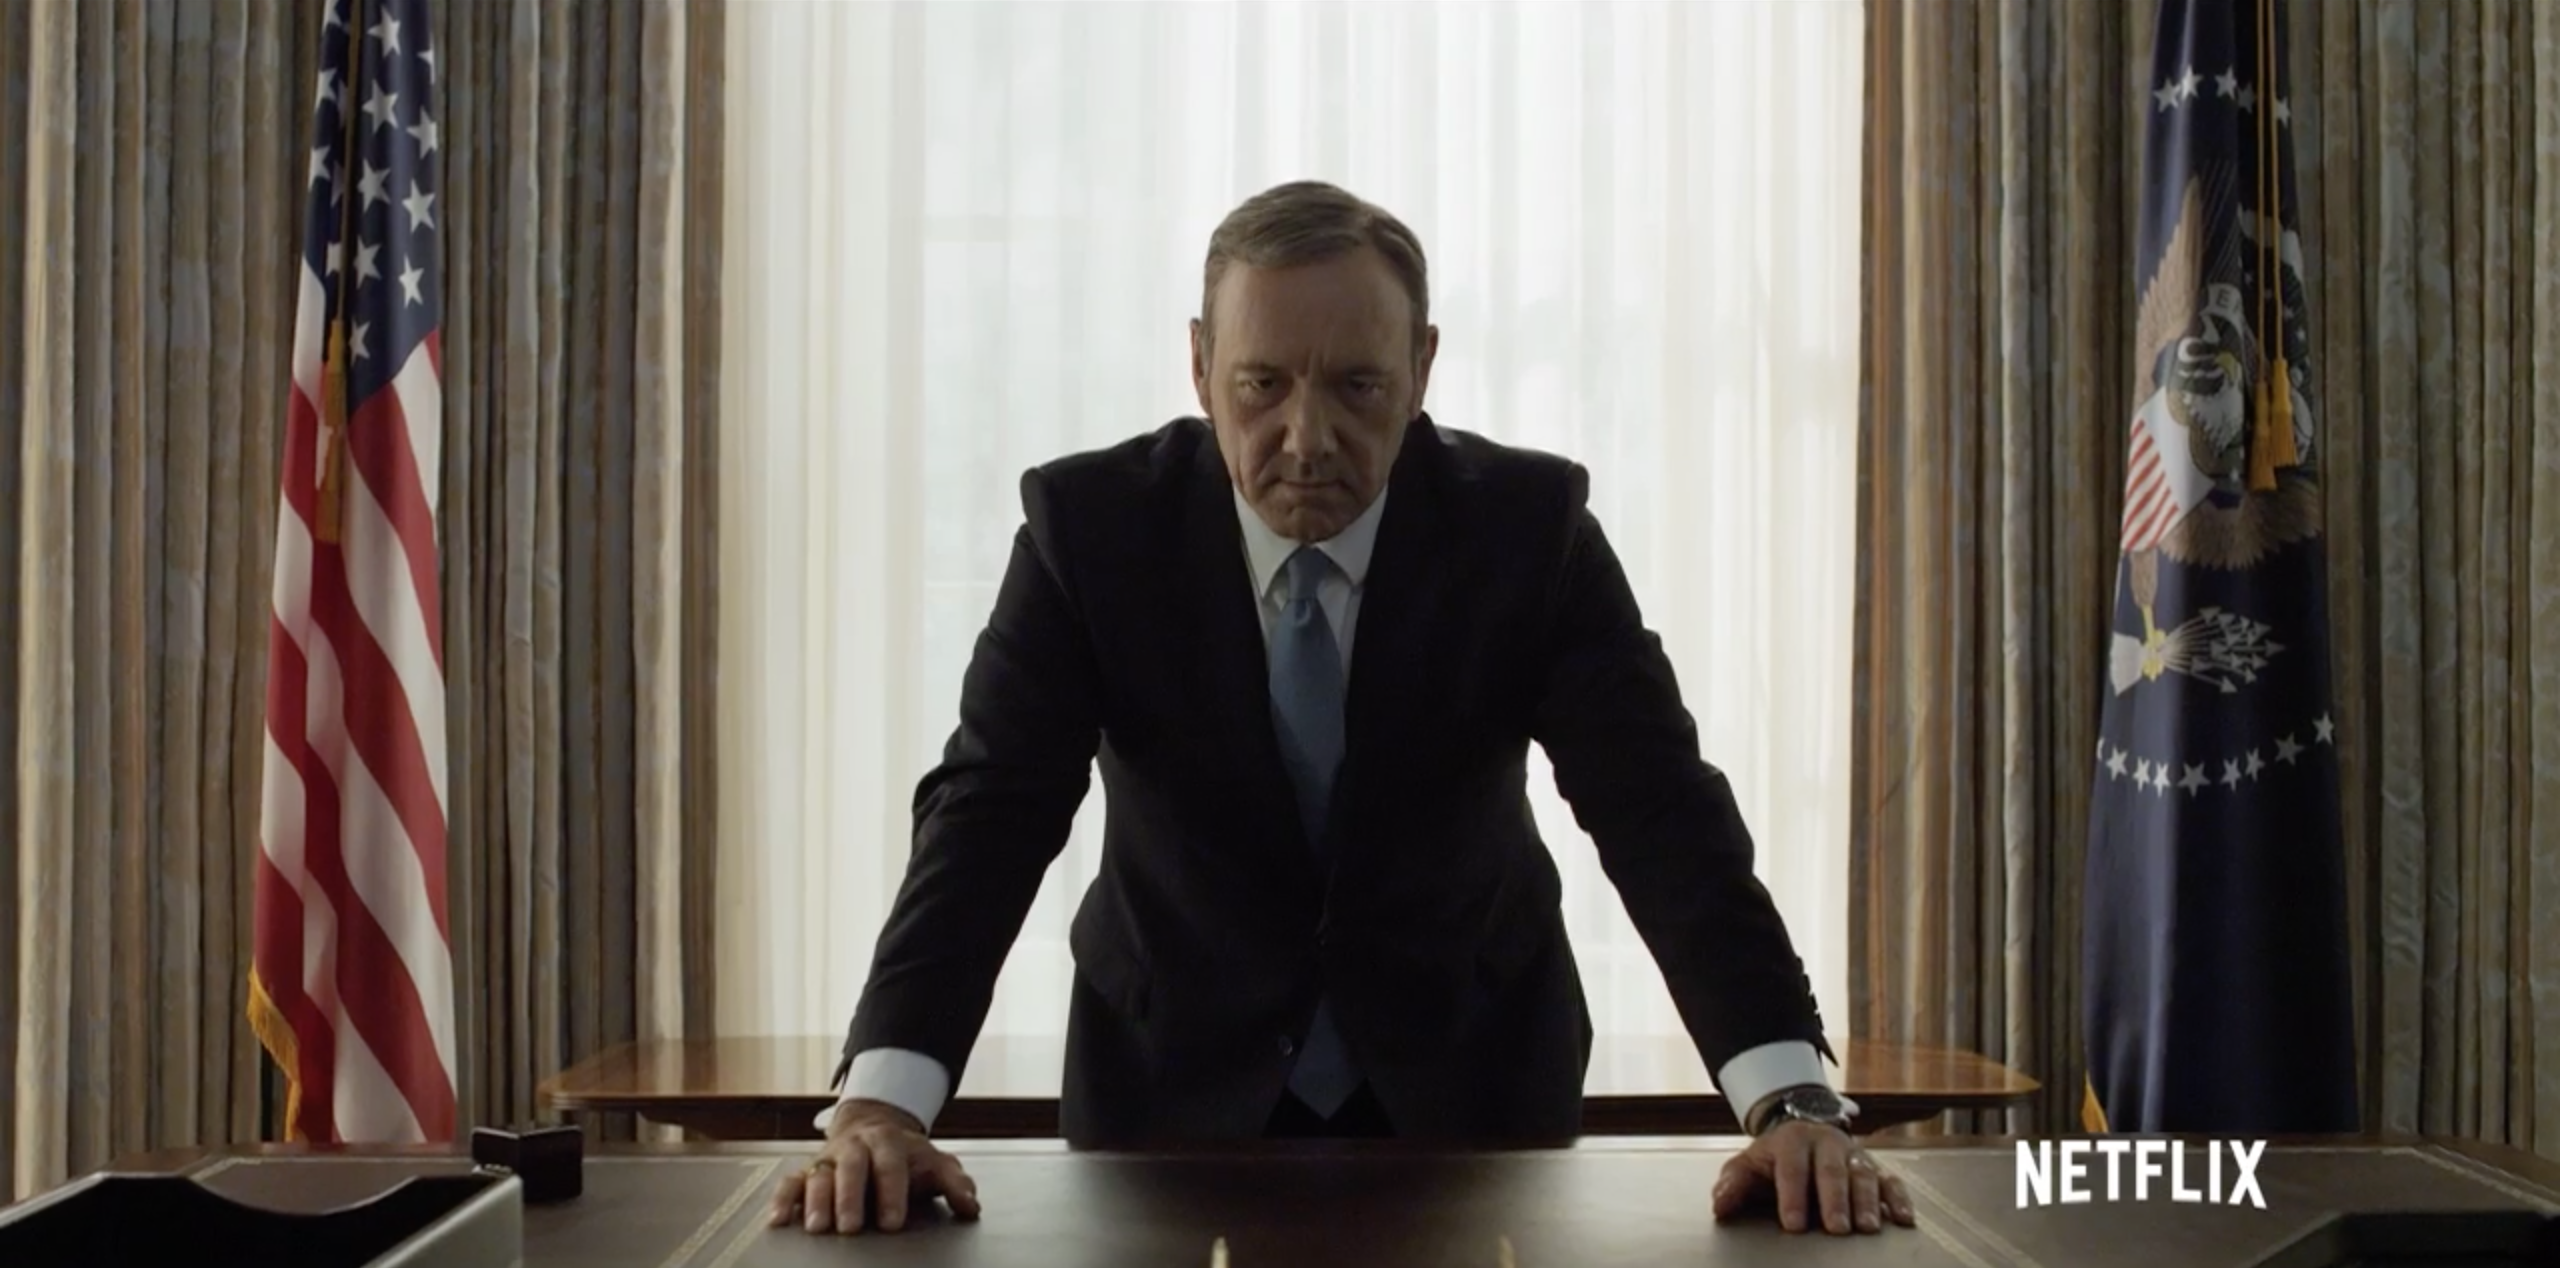 The House of Cards Season 4 Trailer is a Creepy Frank's Greatest Hits